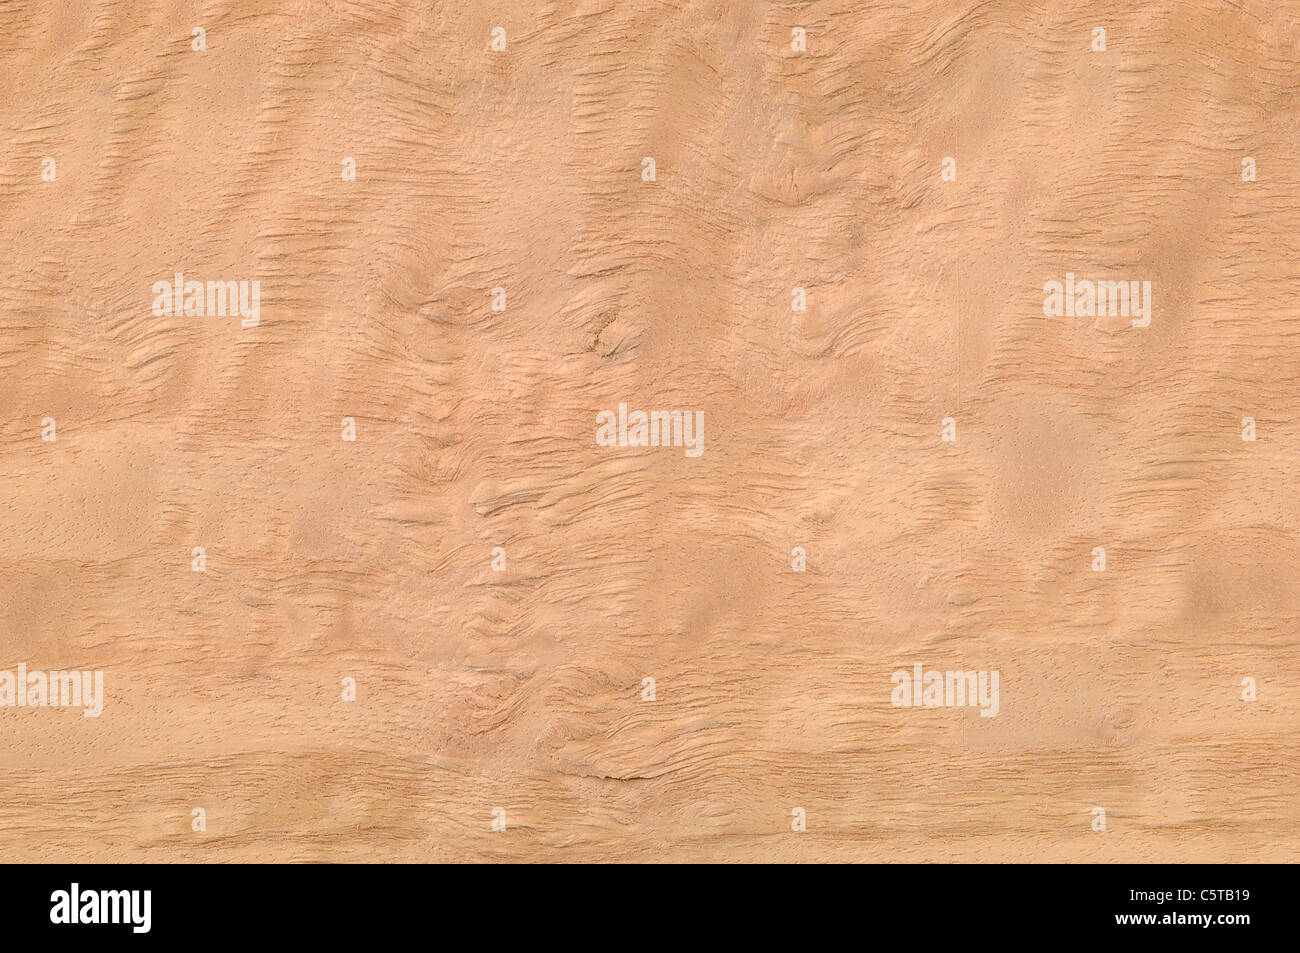 Wood surface, Eucalyptus Wood (Eucalyptus spp.), full frame - Stock Image